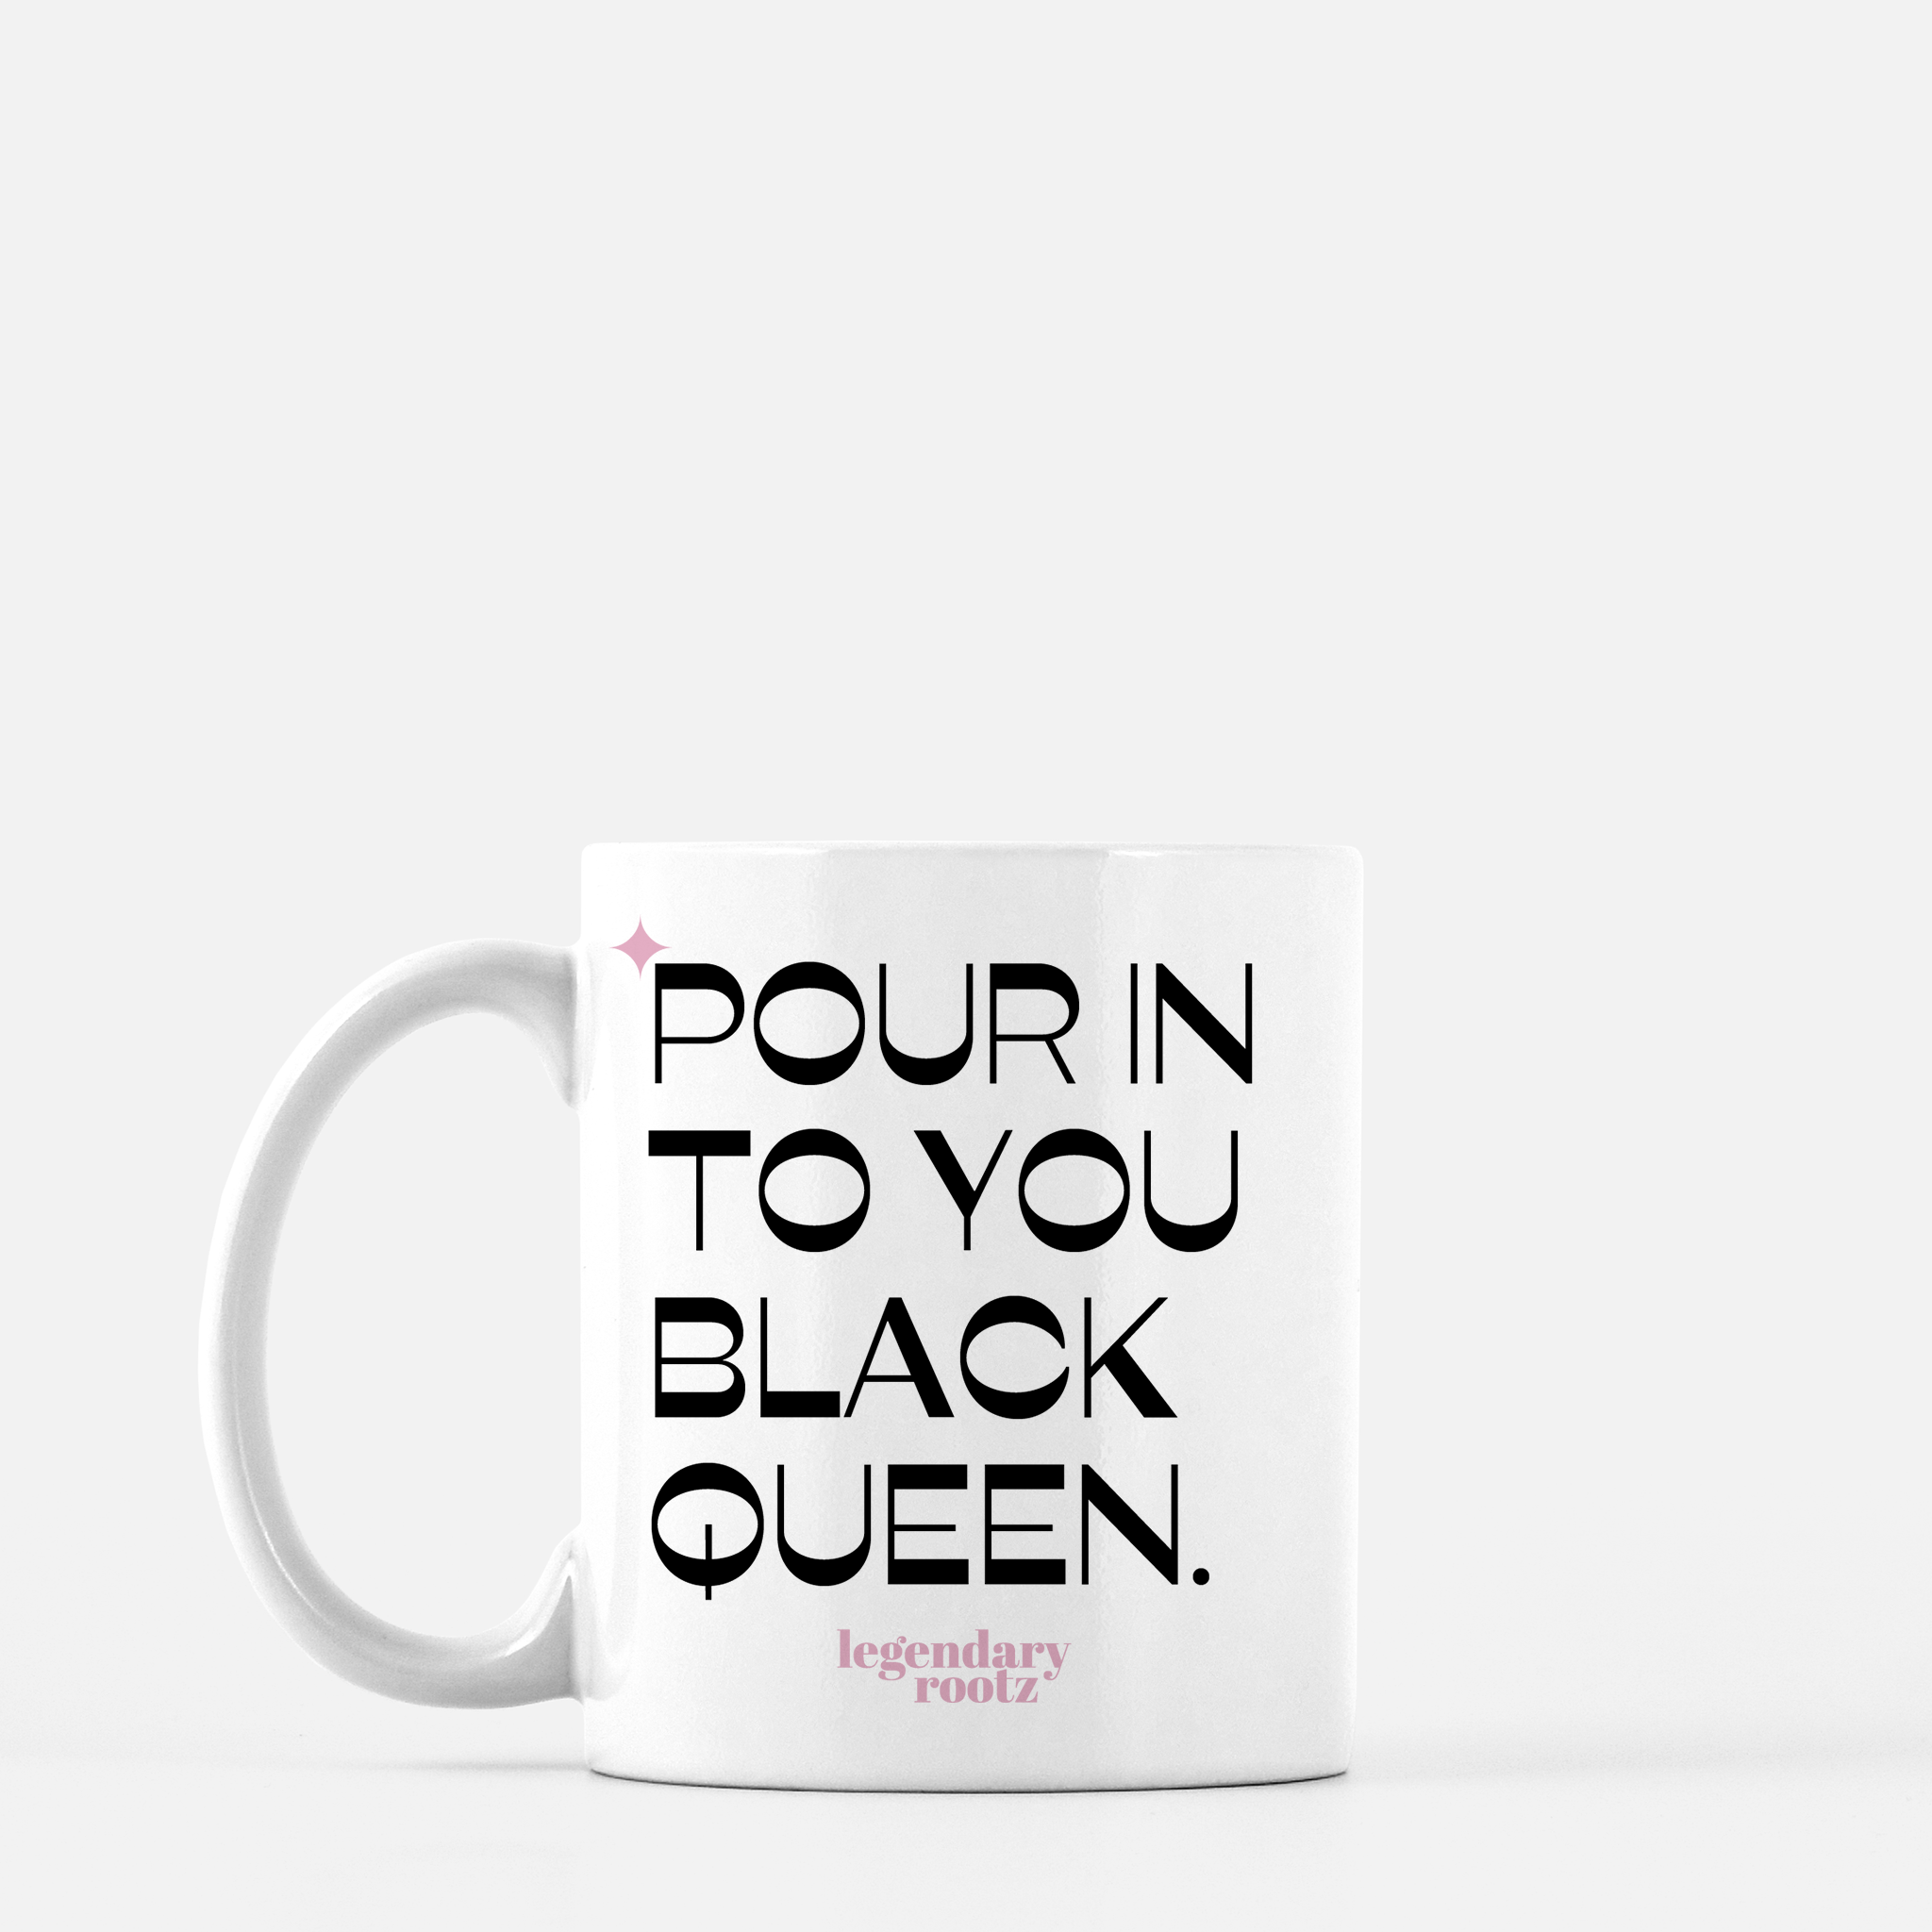 Pour In To You Black Queen | Mug